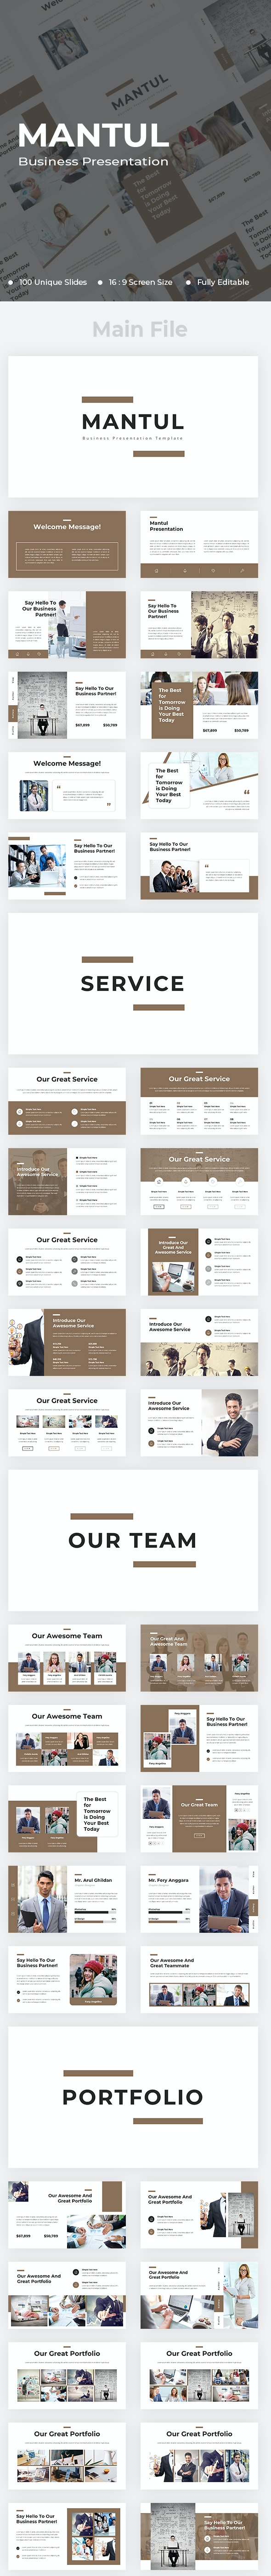 Mantul Business Keynote - Business Keynote Templates